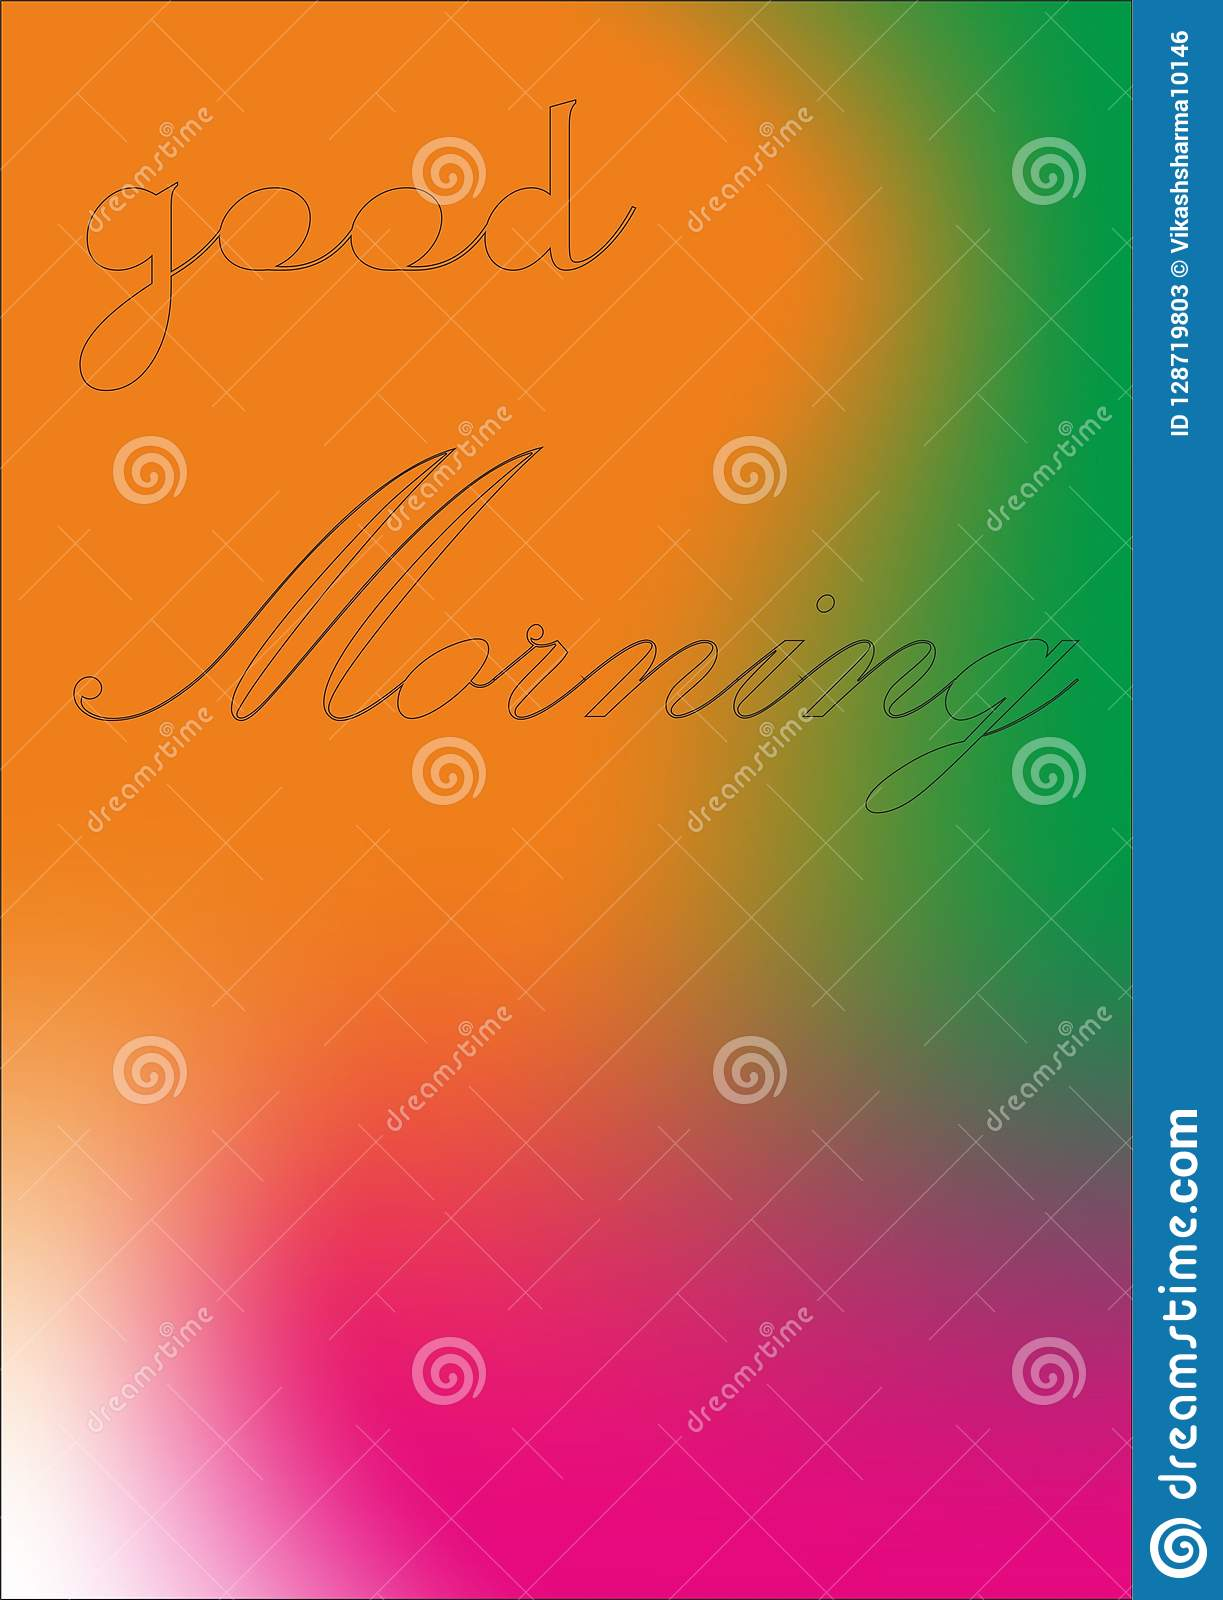 Design Good Morning Wishes Quotes Stock Illustration Illustration